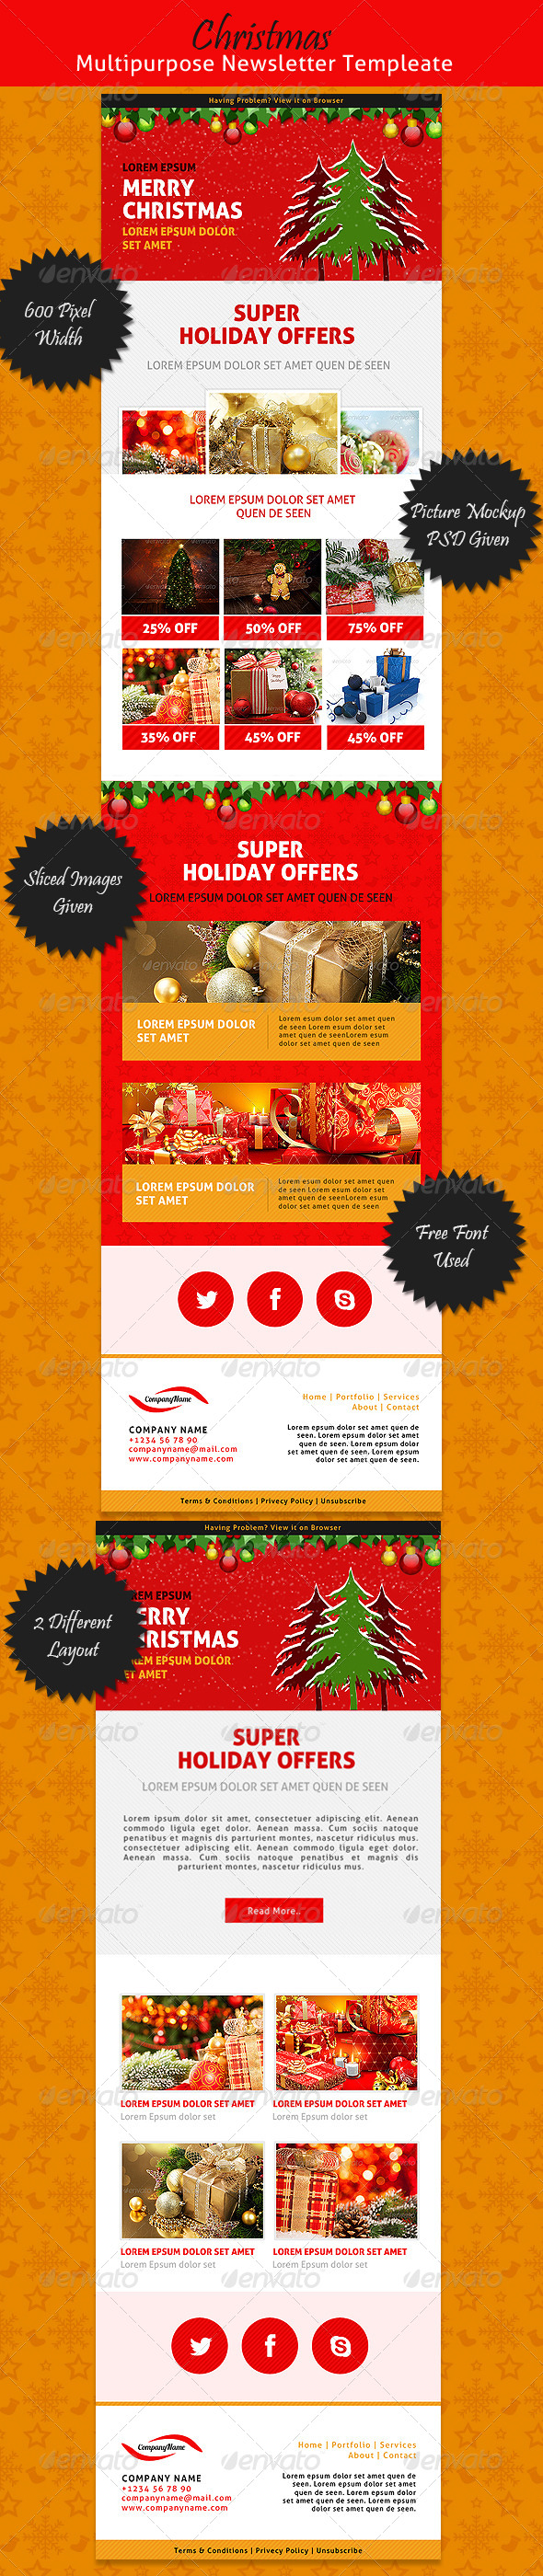 GraphicRiver Christmas Multipurpose Newsletter Template 6416163